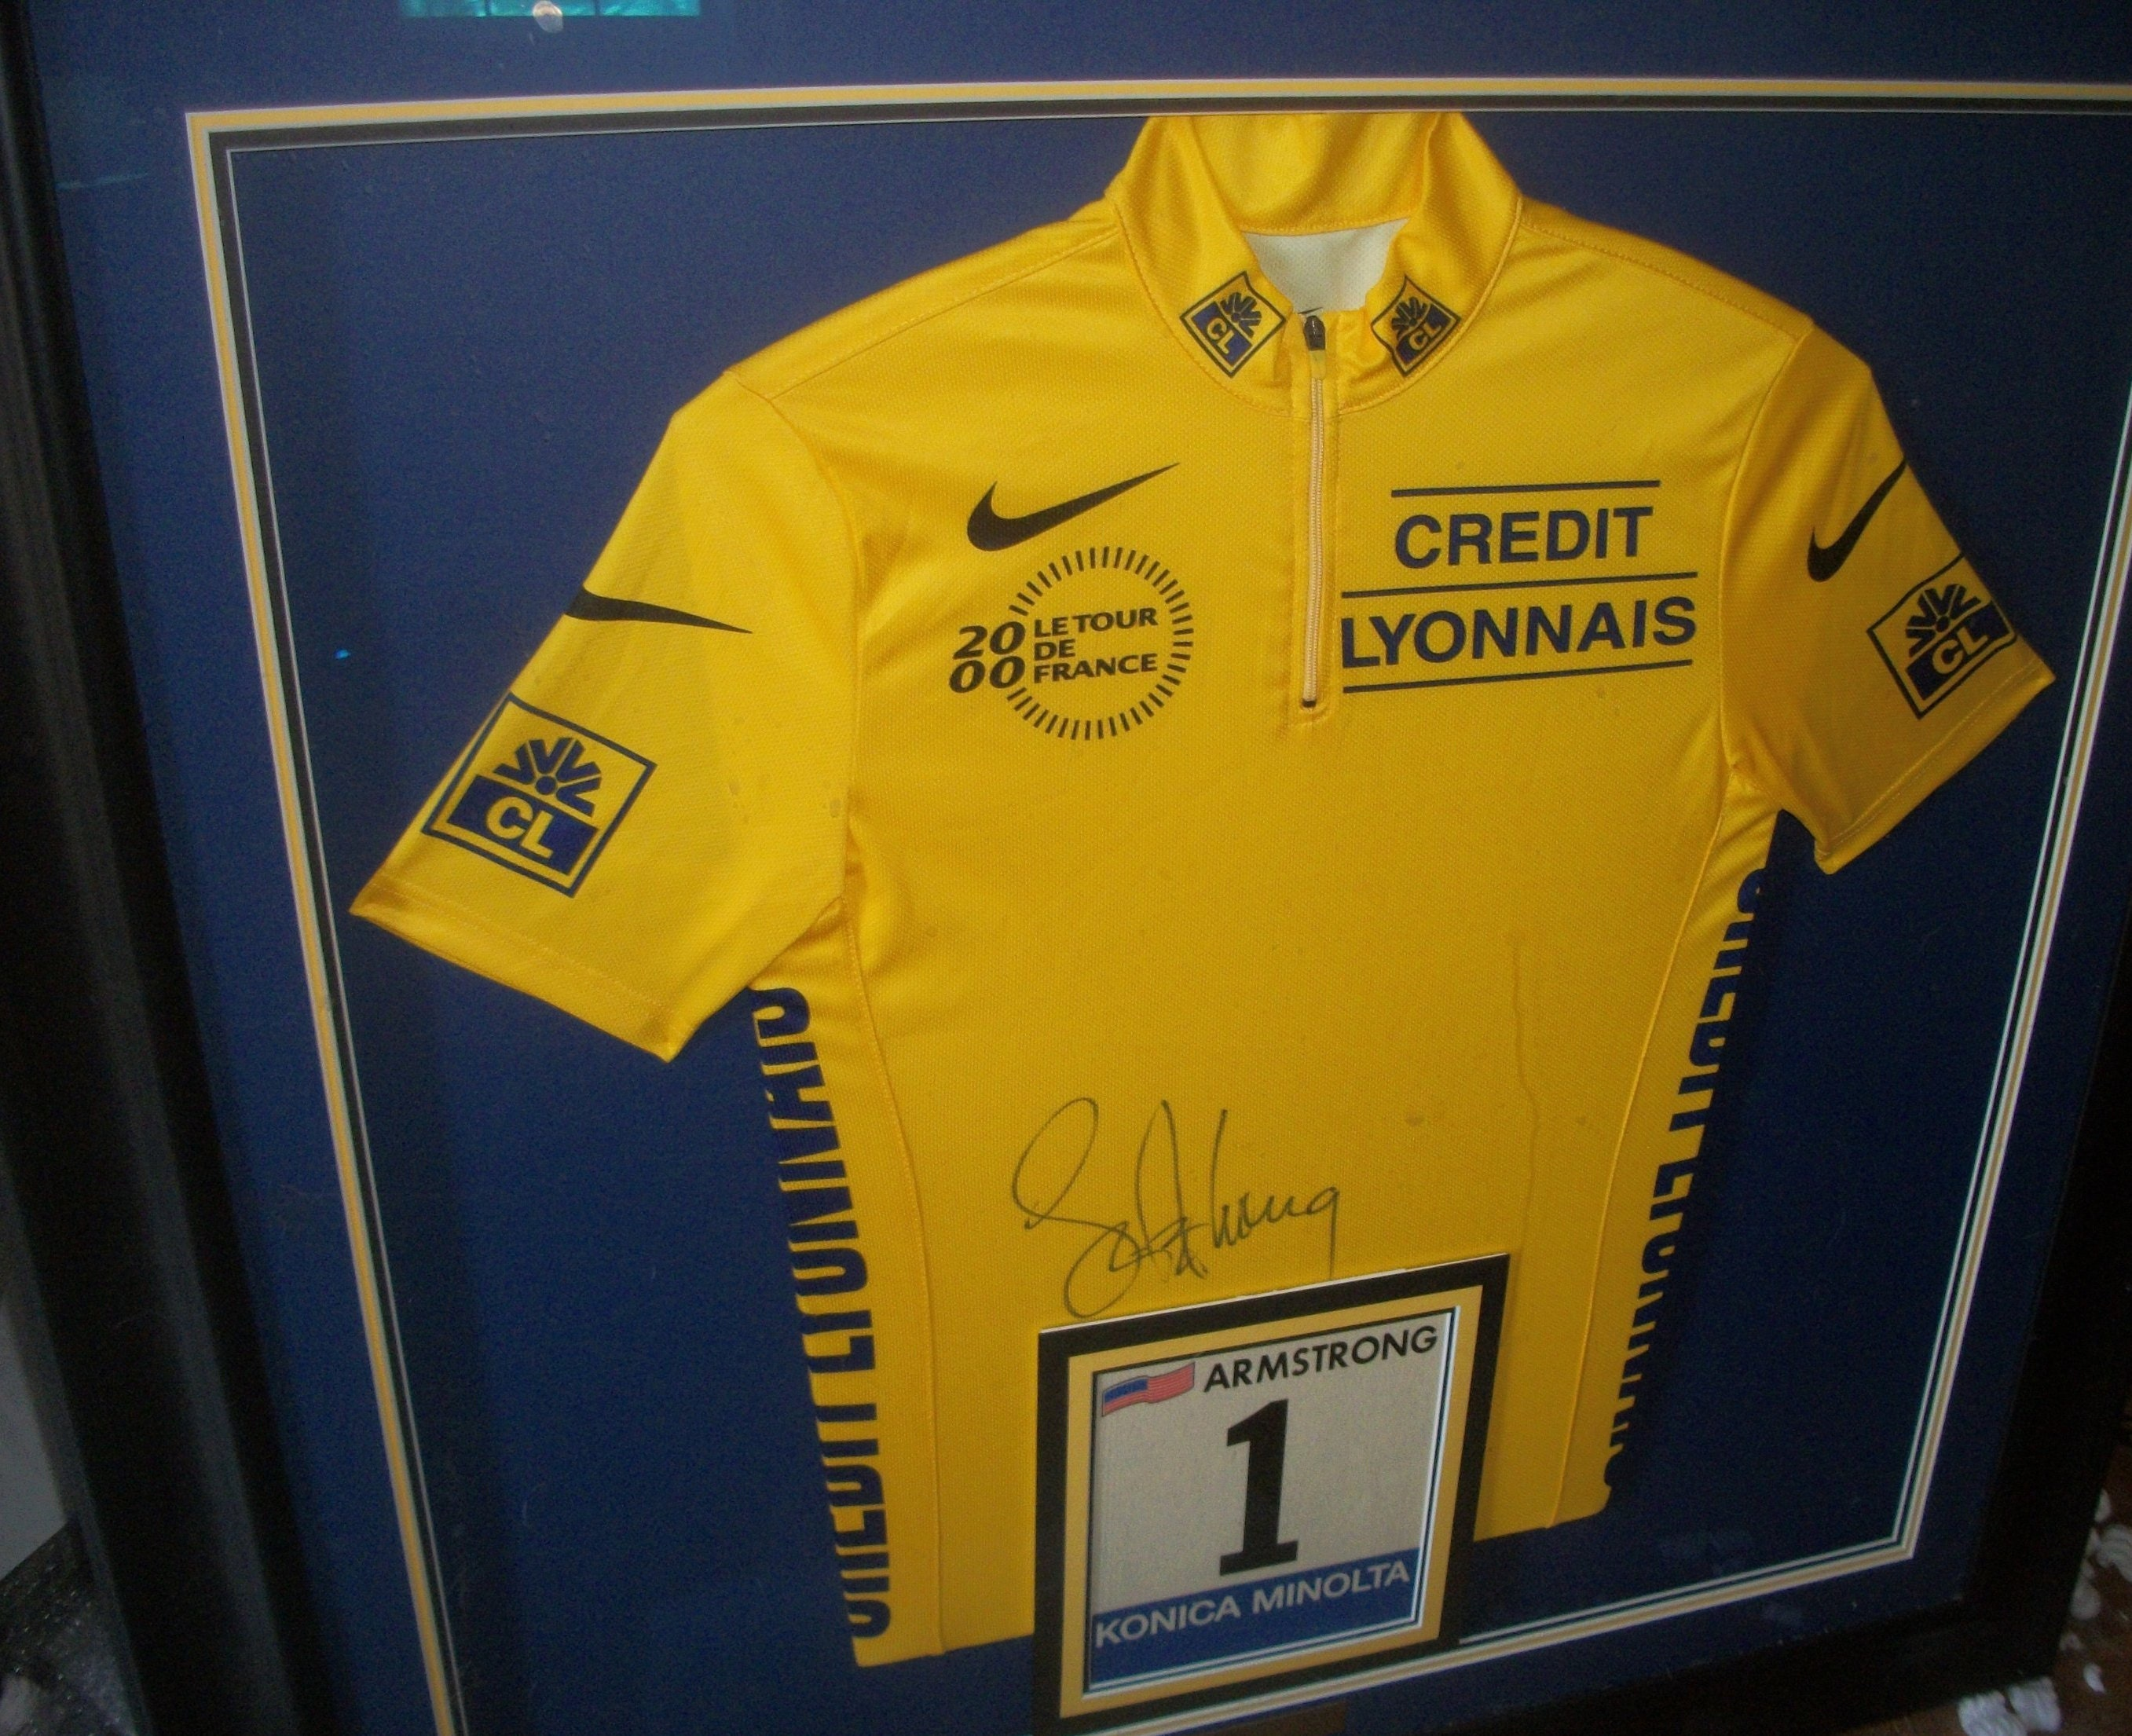 Lance Armstrong Signed USPS Tour de France (2000) Nike Yellow Jersey 38x38  Custom Framed Display   TDF  1 Bib Race Number   (Includes COA) 6a9eb2b13